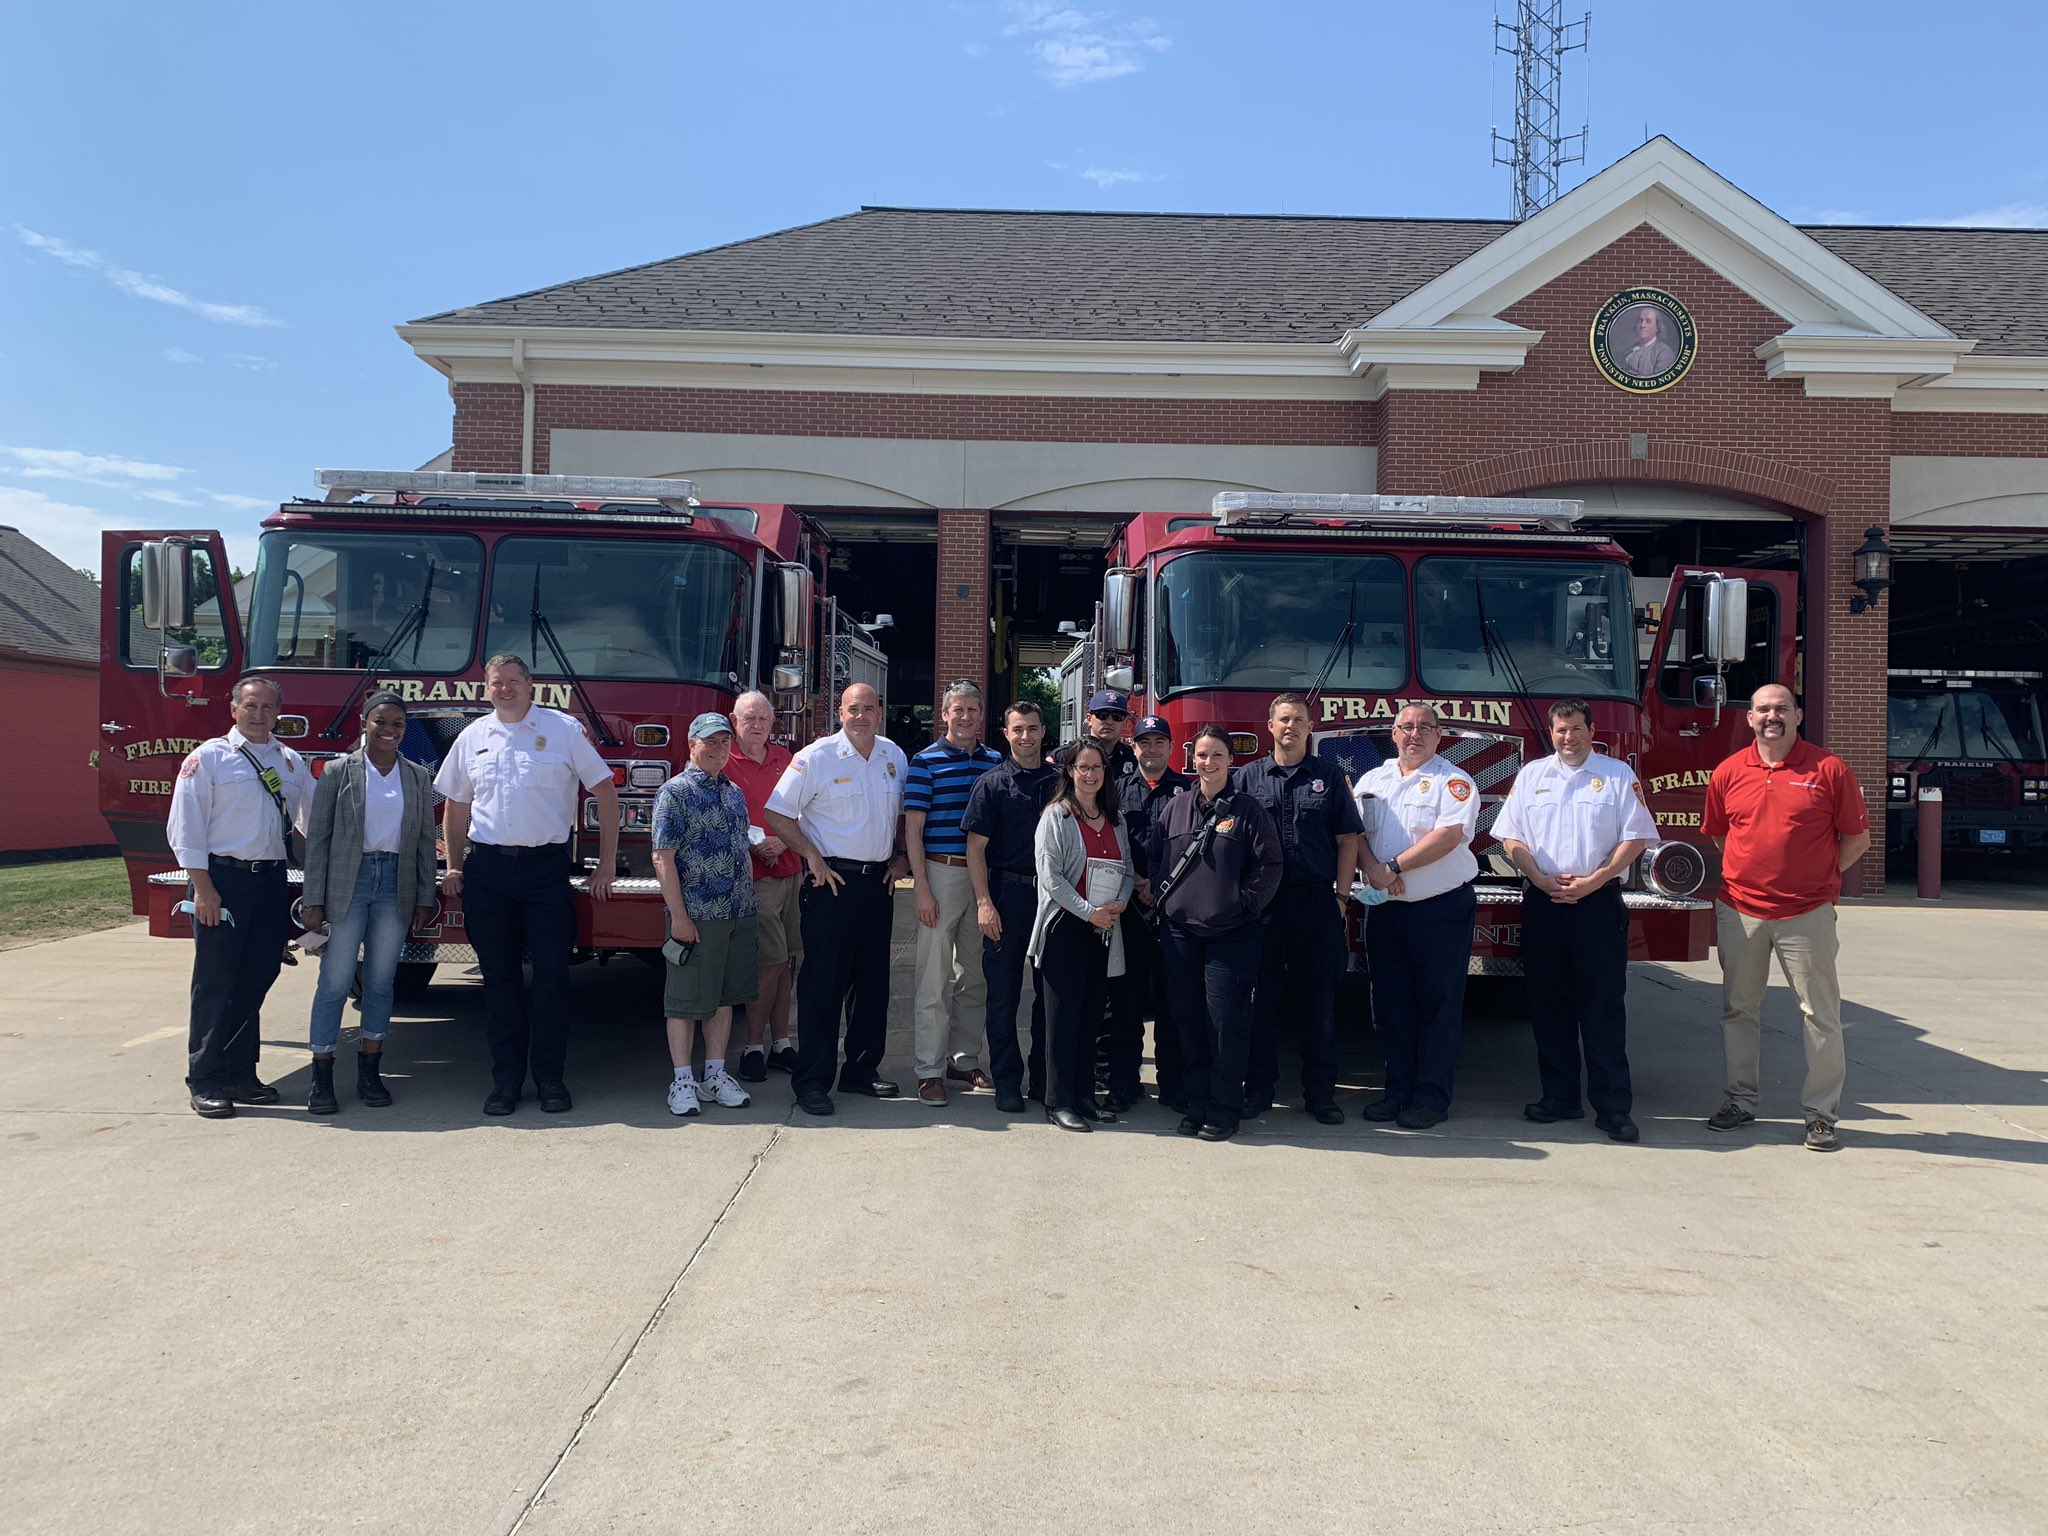 Franklin Fire Dept welcomes 2 new engines